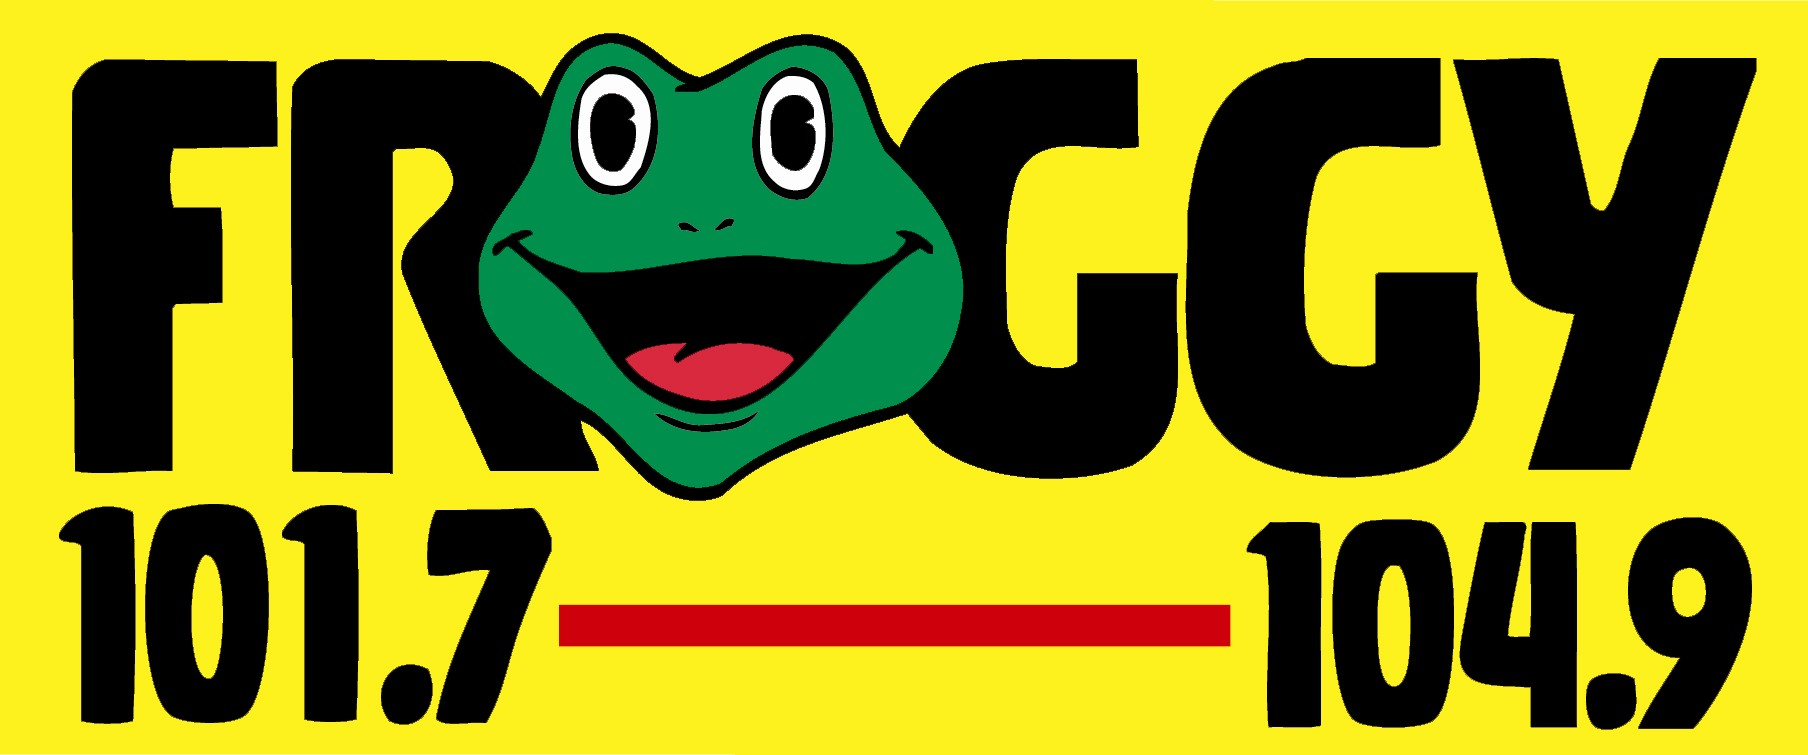 WFKY Froggy 104.9 and 101.7 Logo